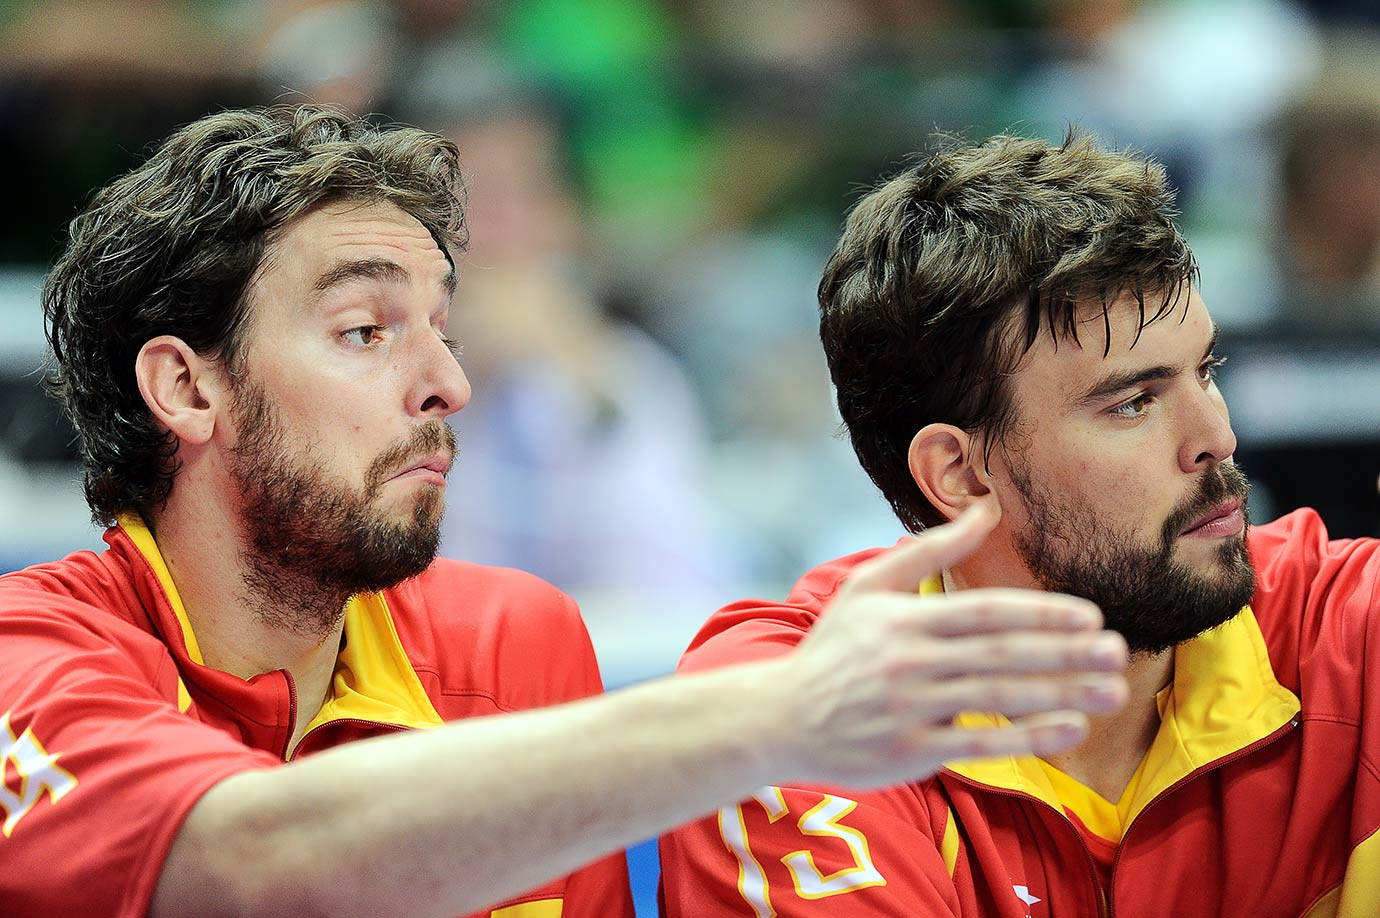 EuroBasket (European Basketball Championship) — Spain vs. France